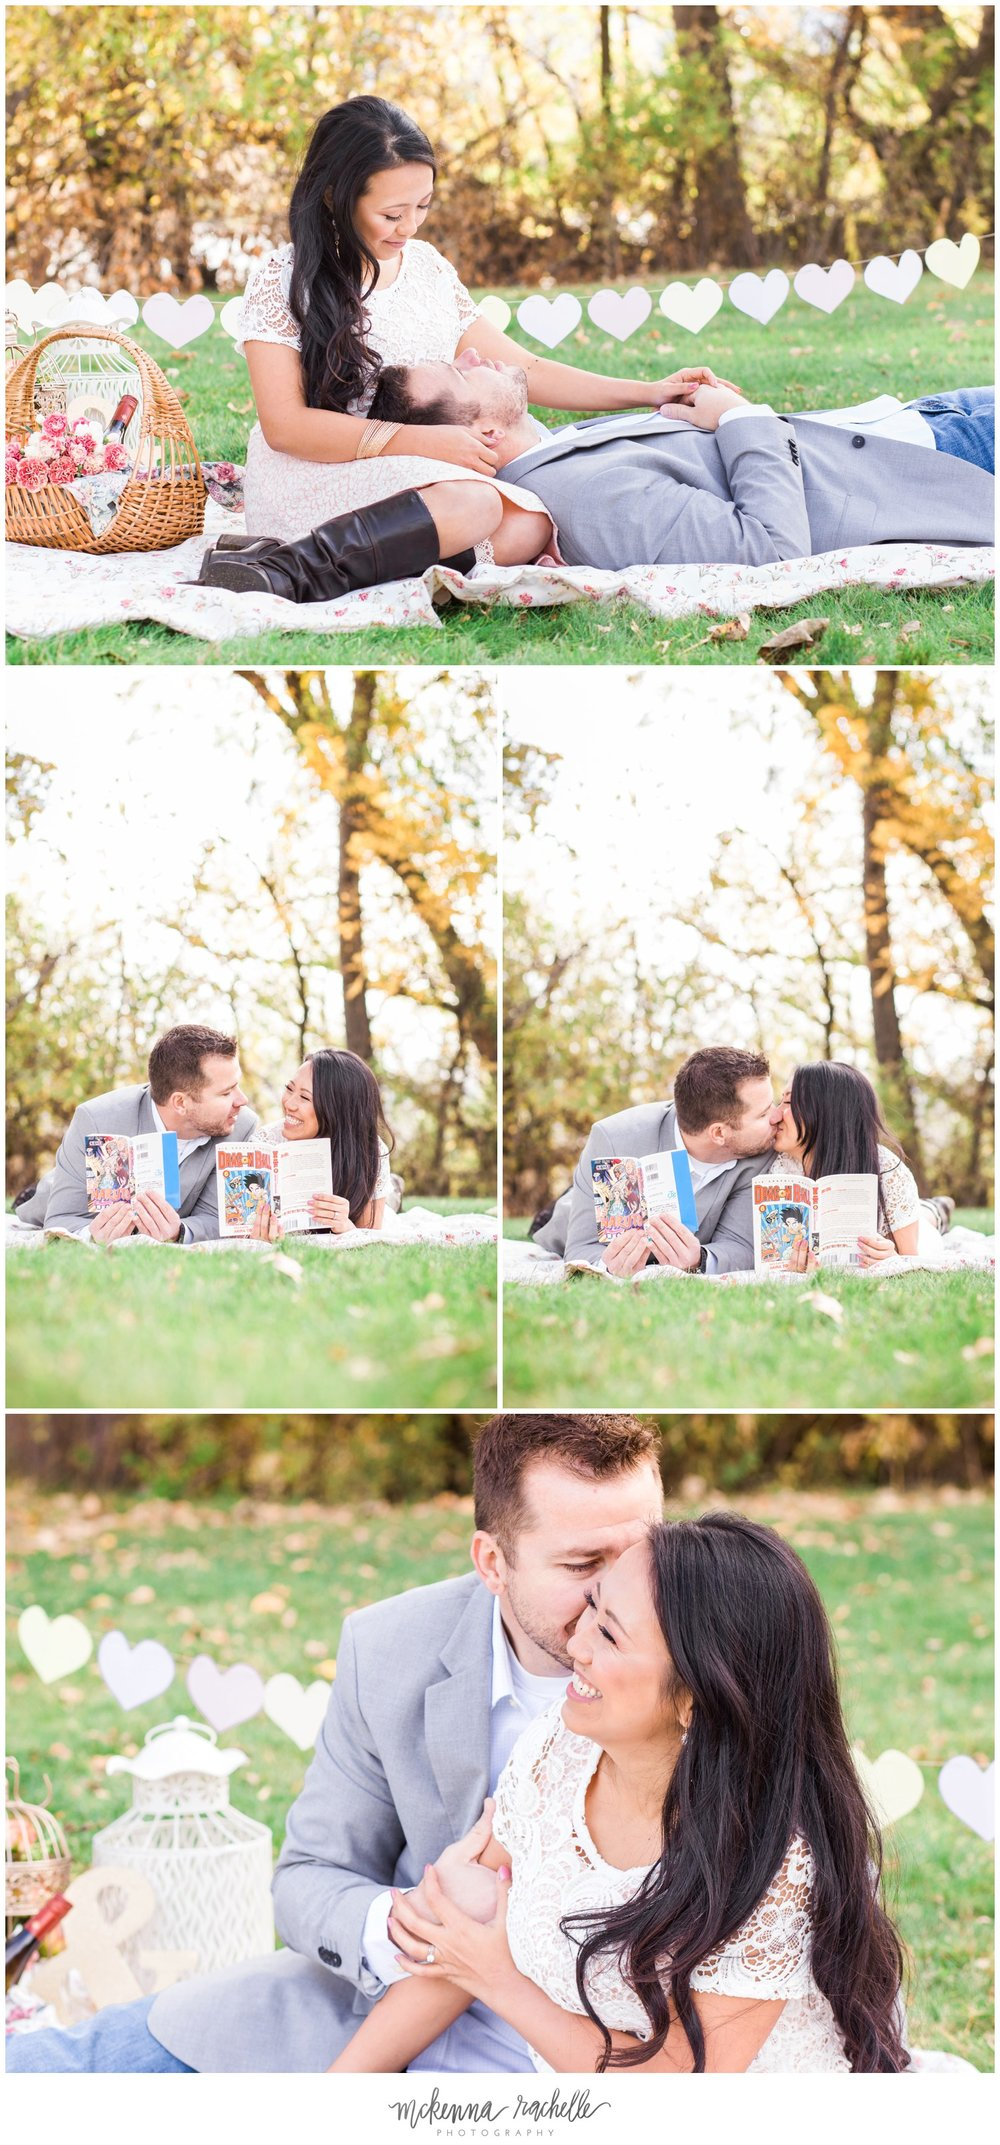 Engagement session, morning picnic and comic books with Pacific Northwest photographer